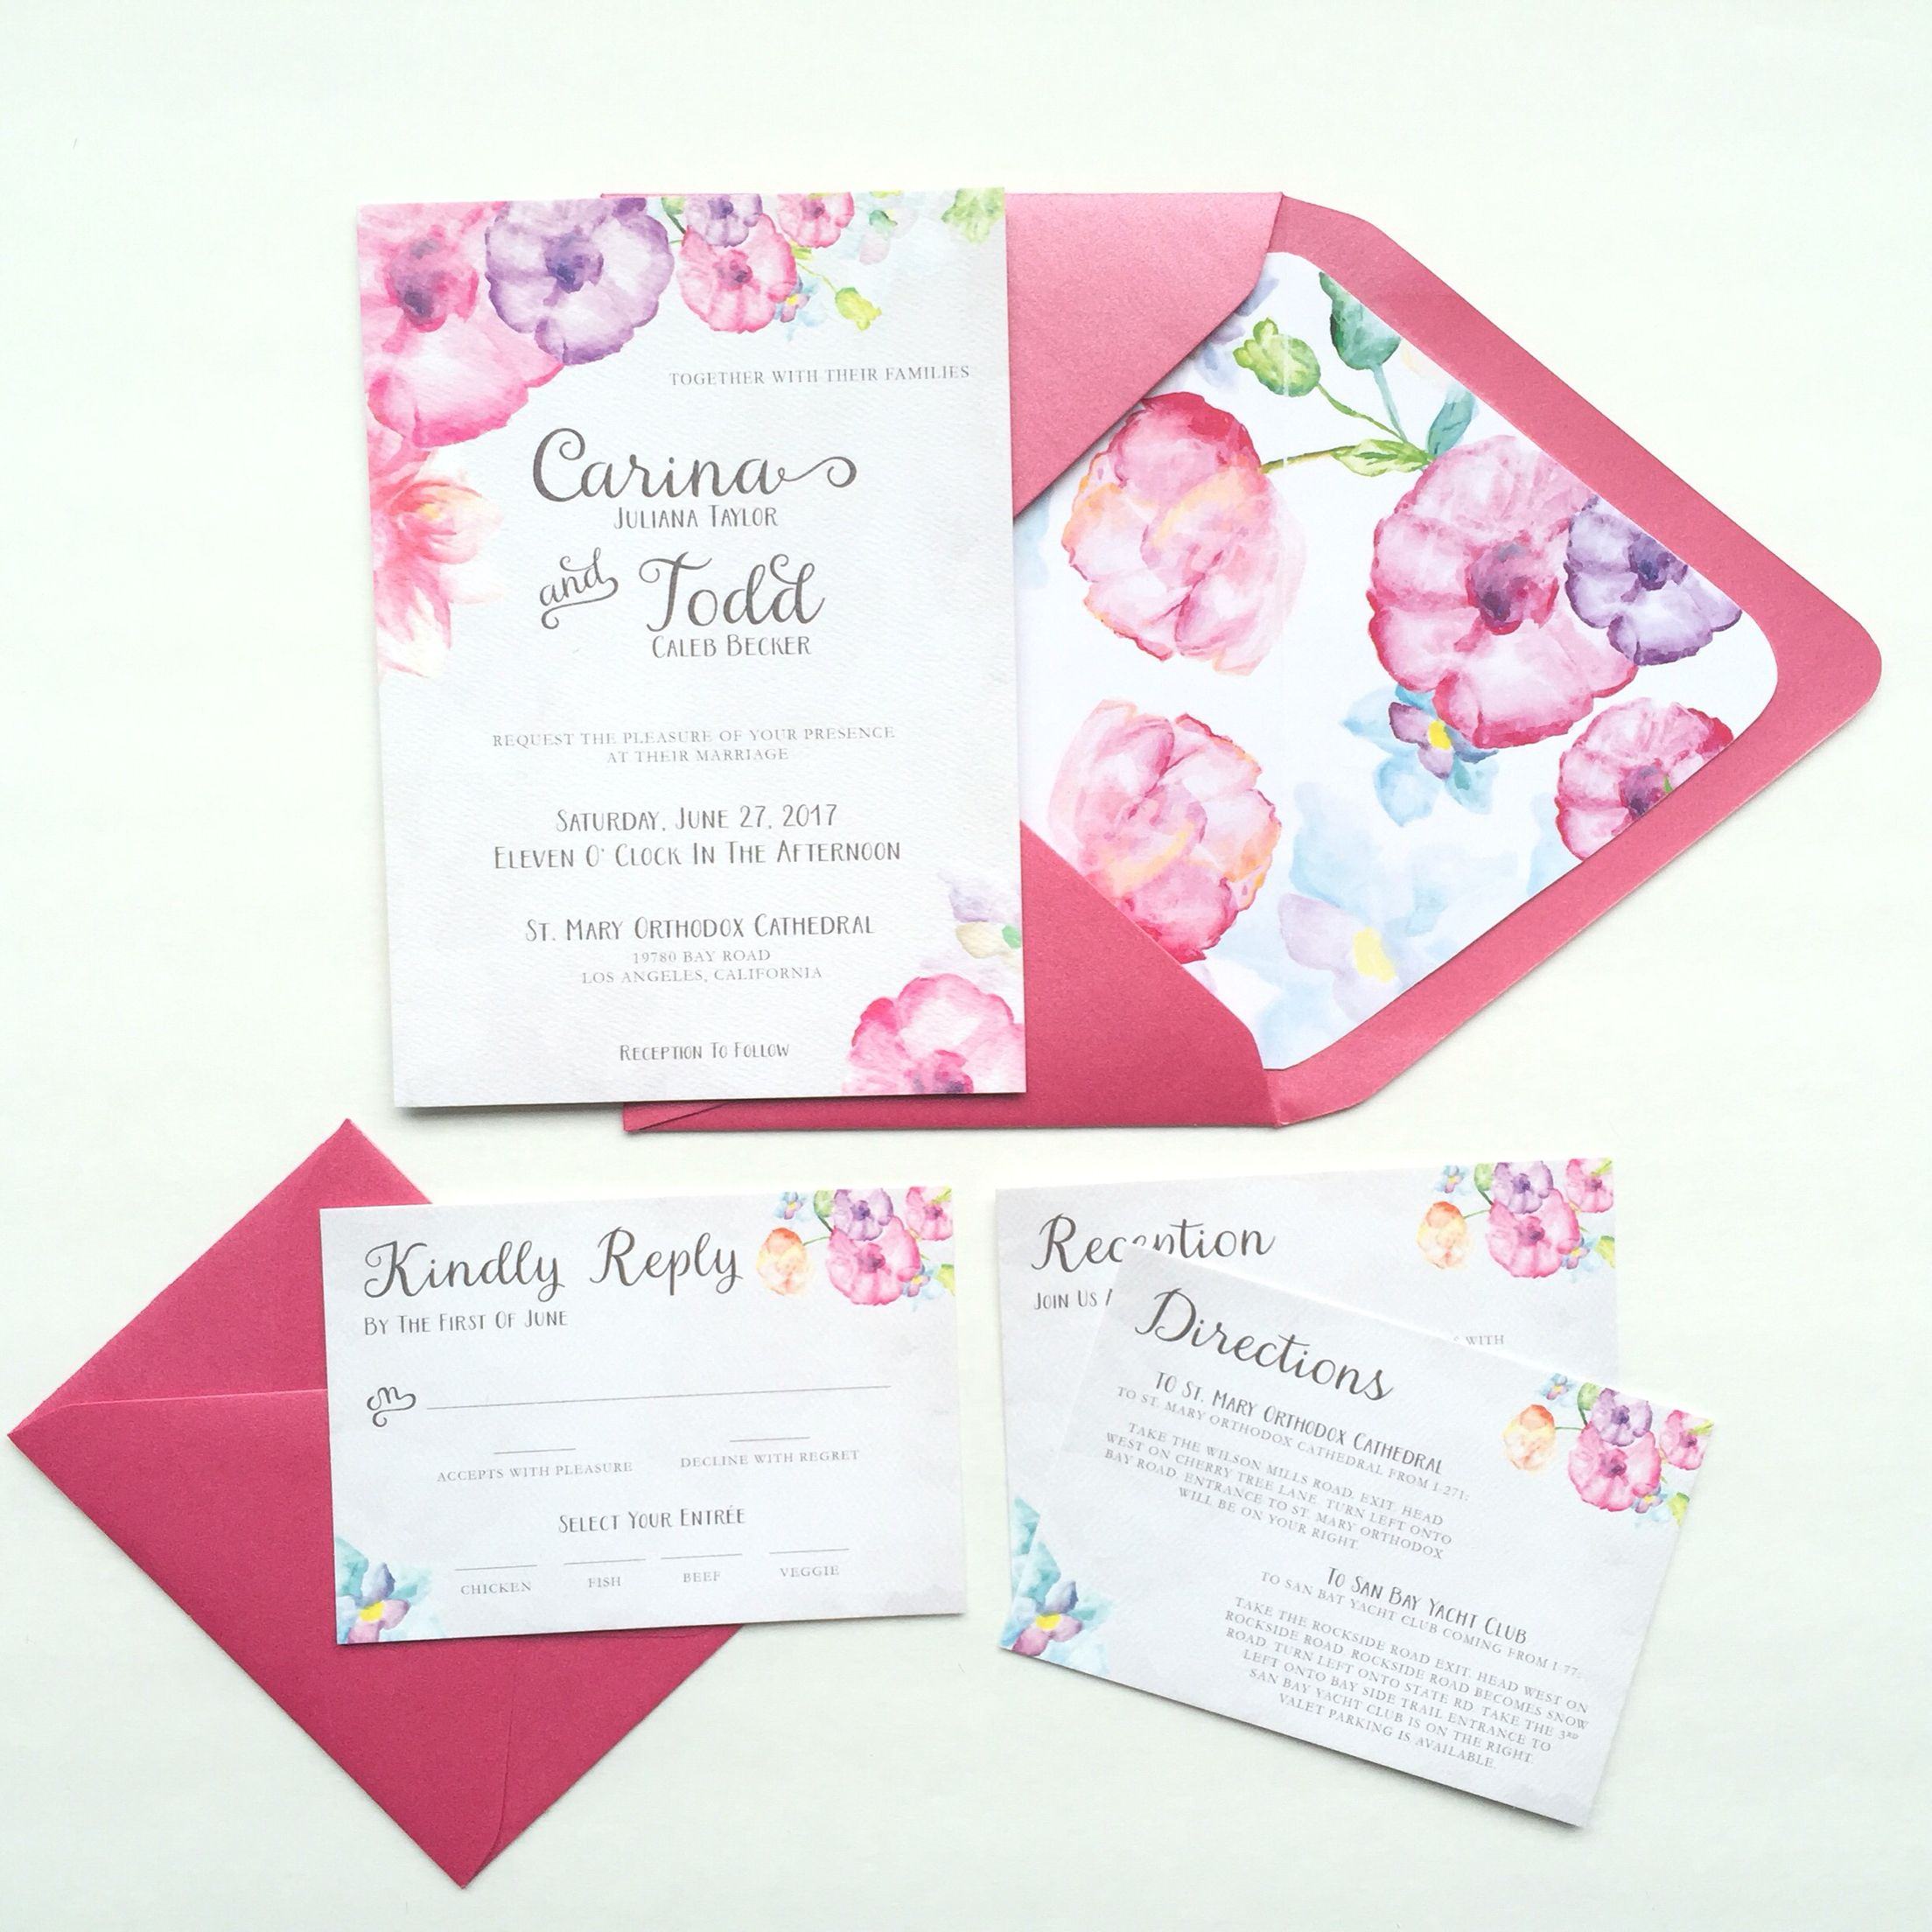 Watercolor floral wedding invitation suite by Design Outside The Box ...